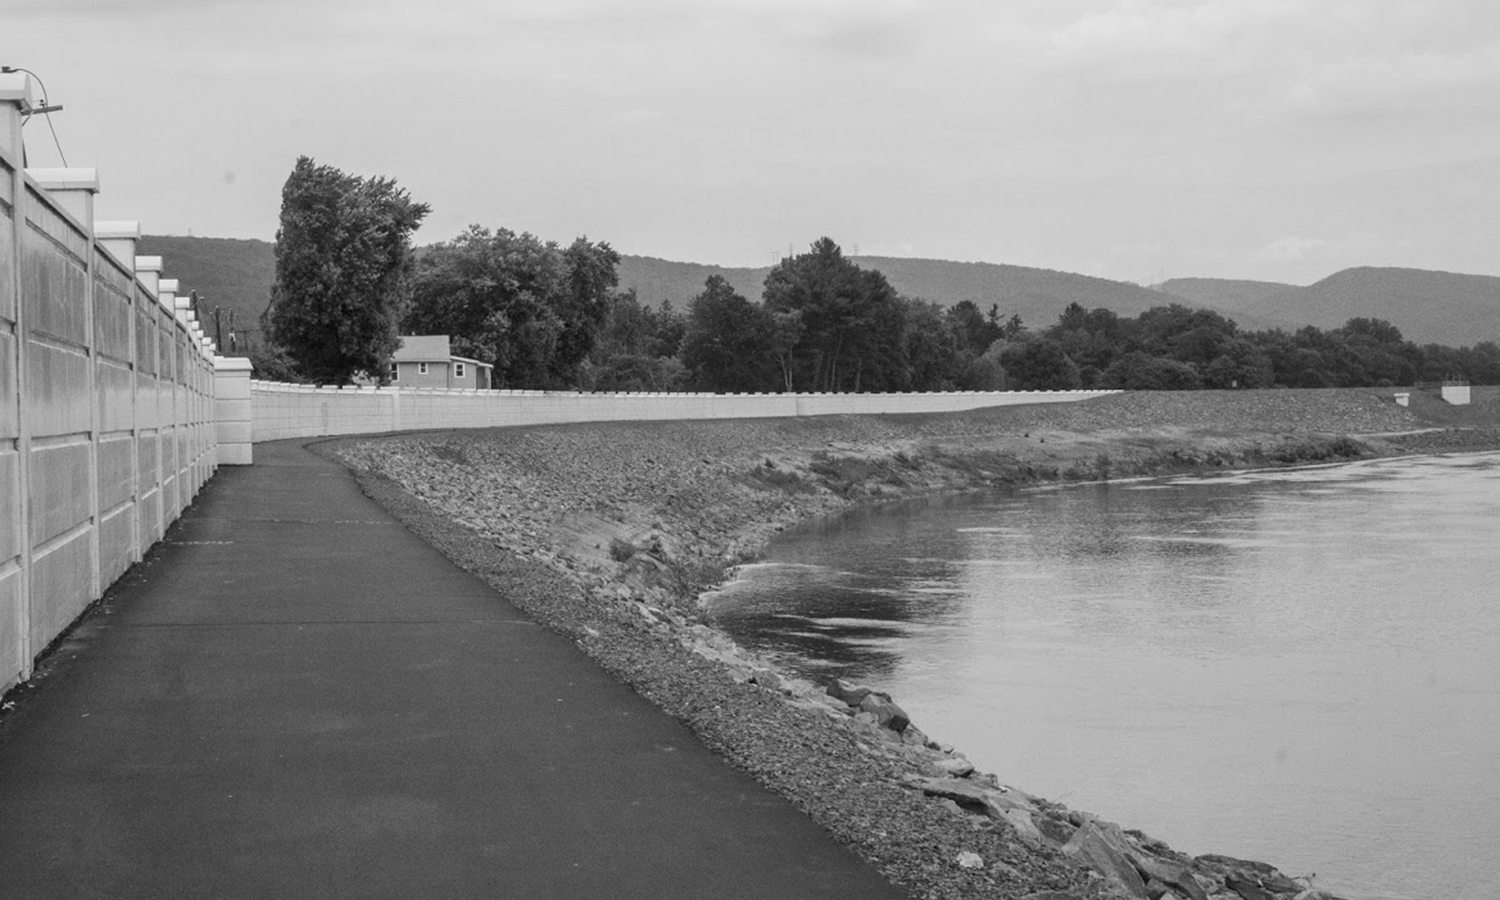 """Kate Barilla '23 looked at """"how the landscape of an area affects human life and vice versa"""" in her photographic study of the Susquehanna River levee system."""